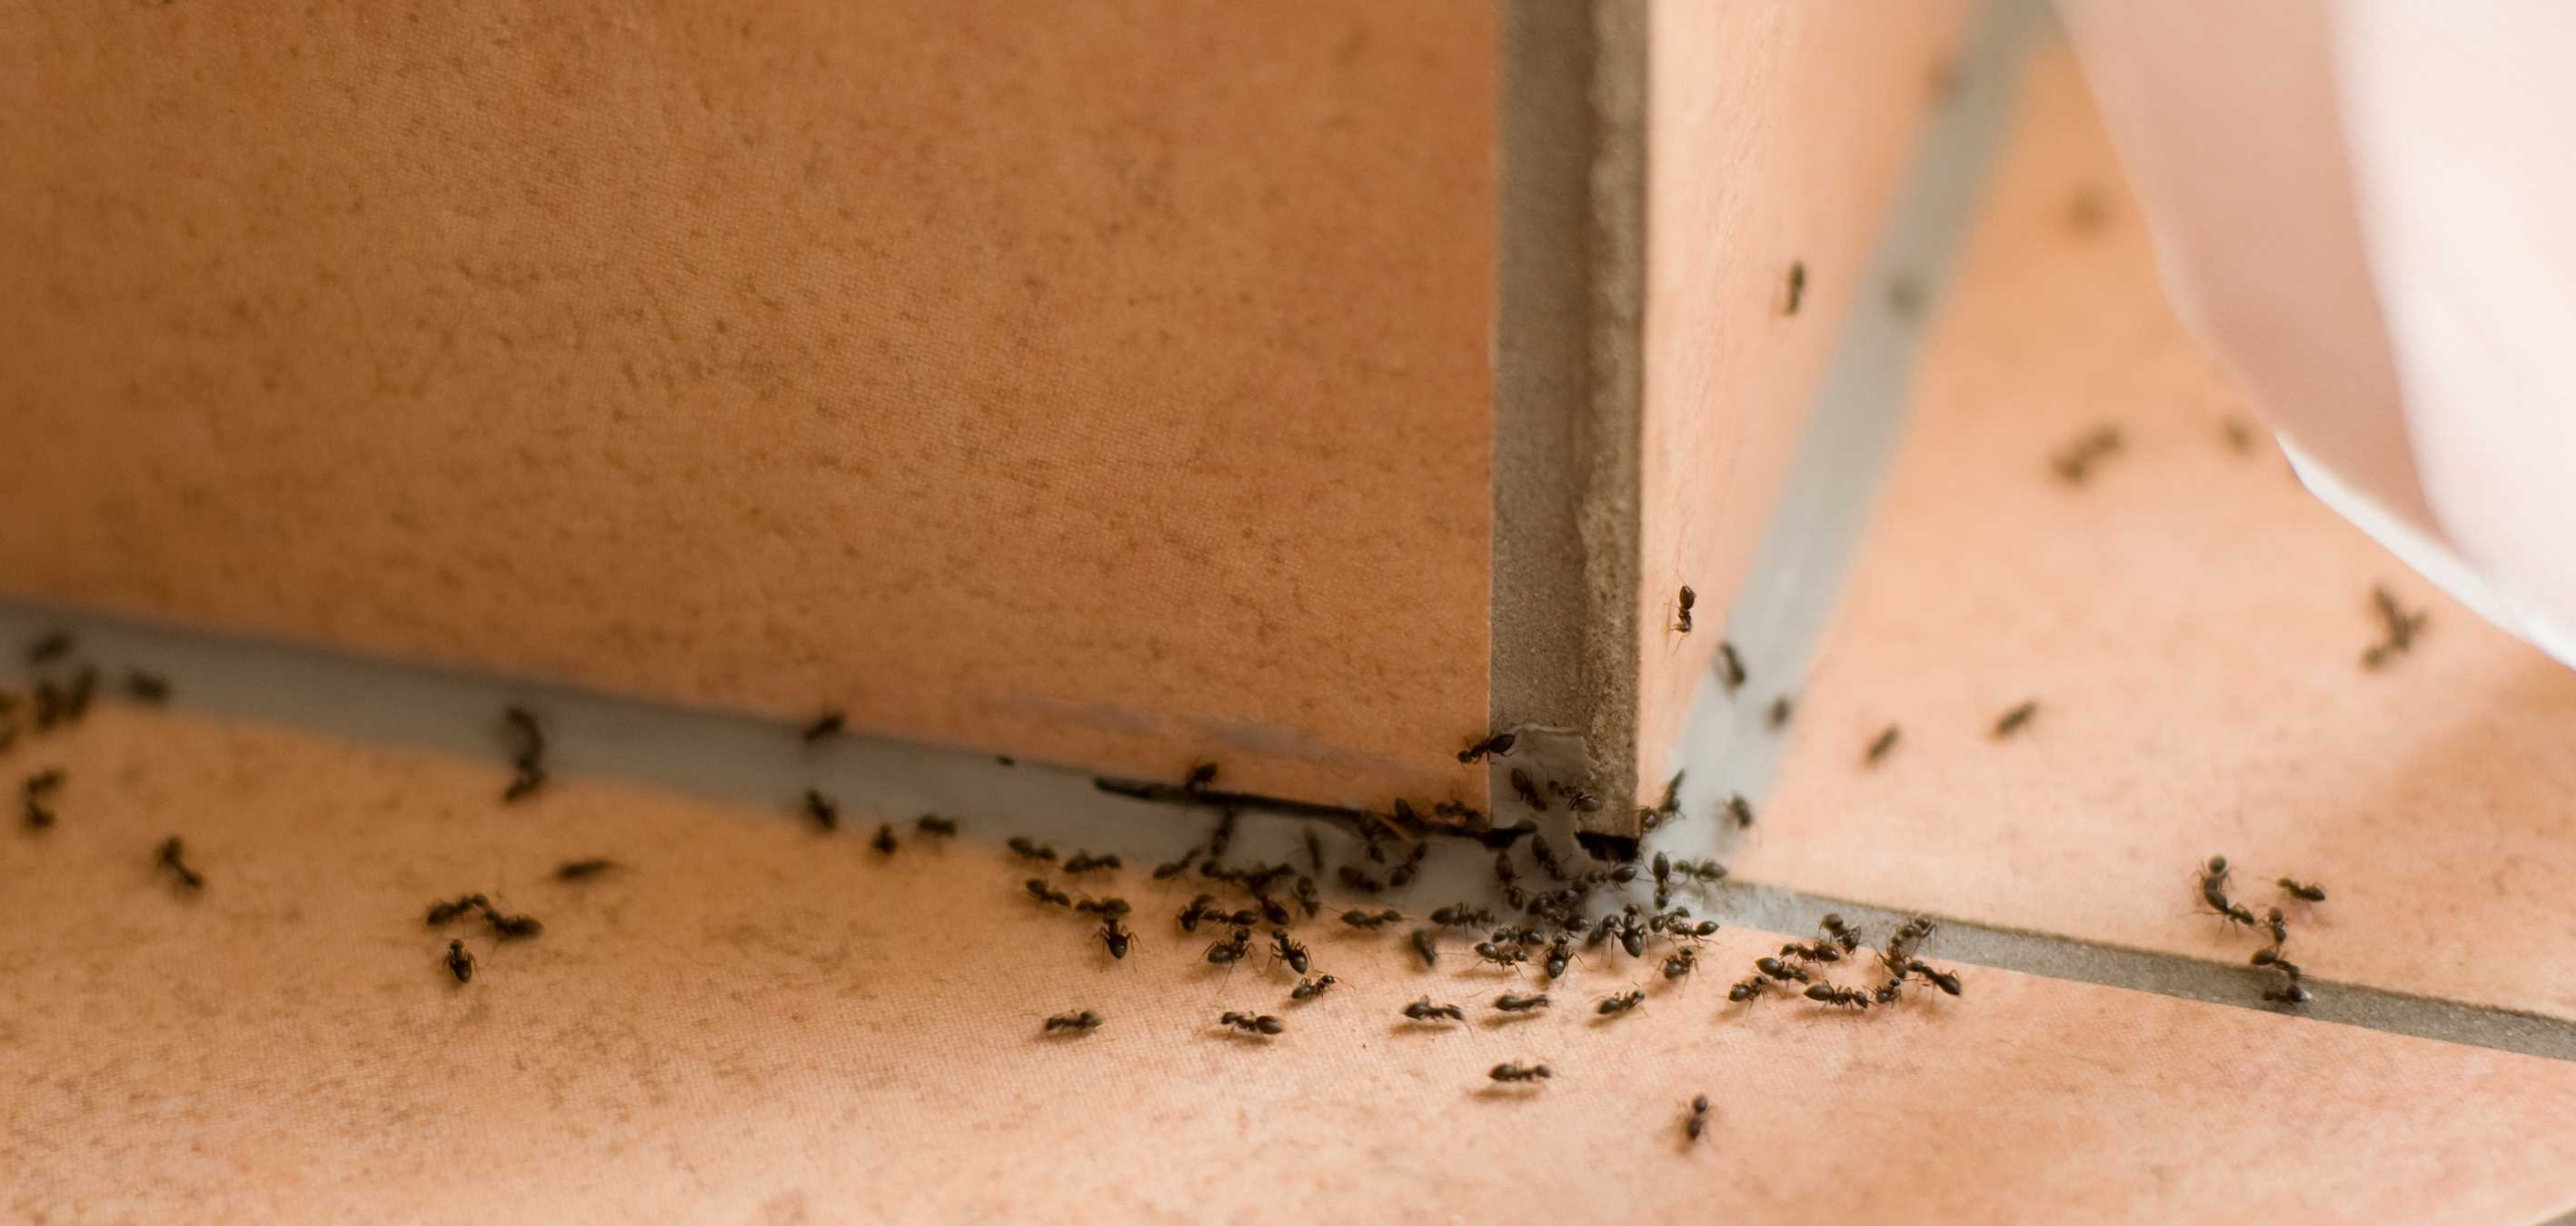 How to Get Rid of Ants - Professional Cleaning Service Springfield MO